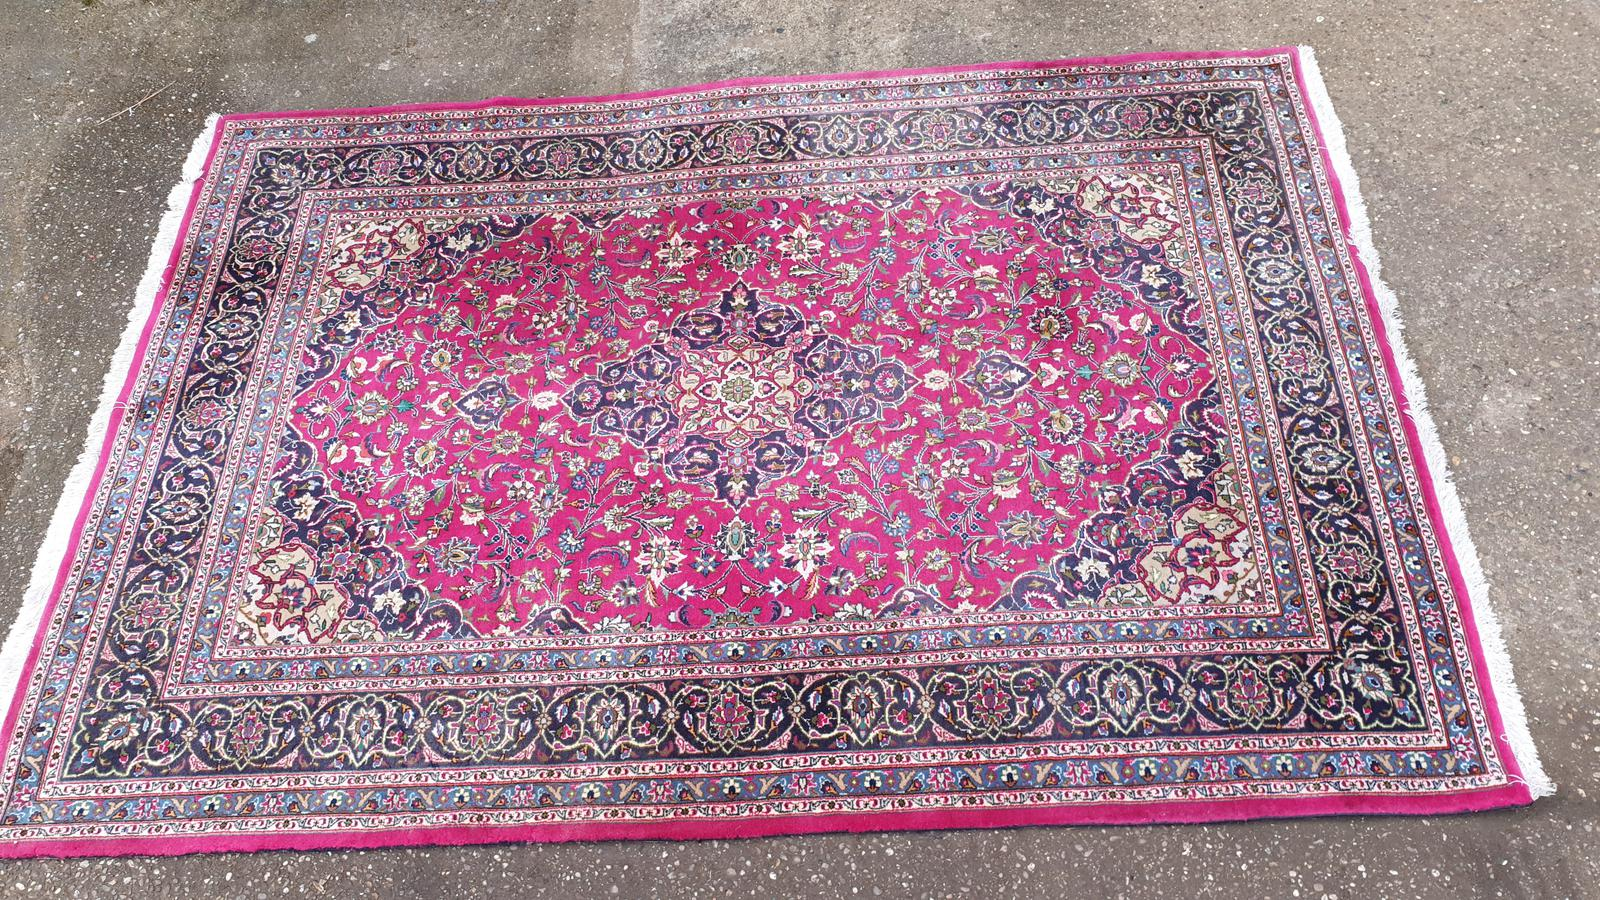 Excellent Quality Wool Carpet (1 of 1)